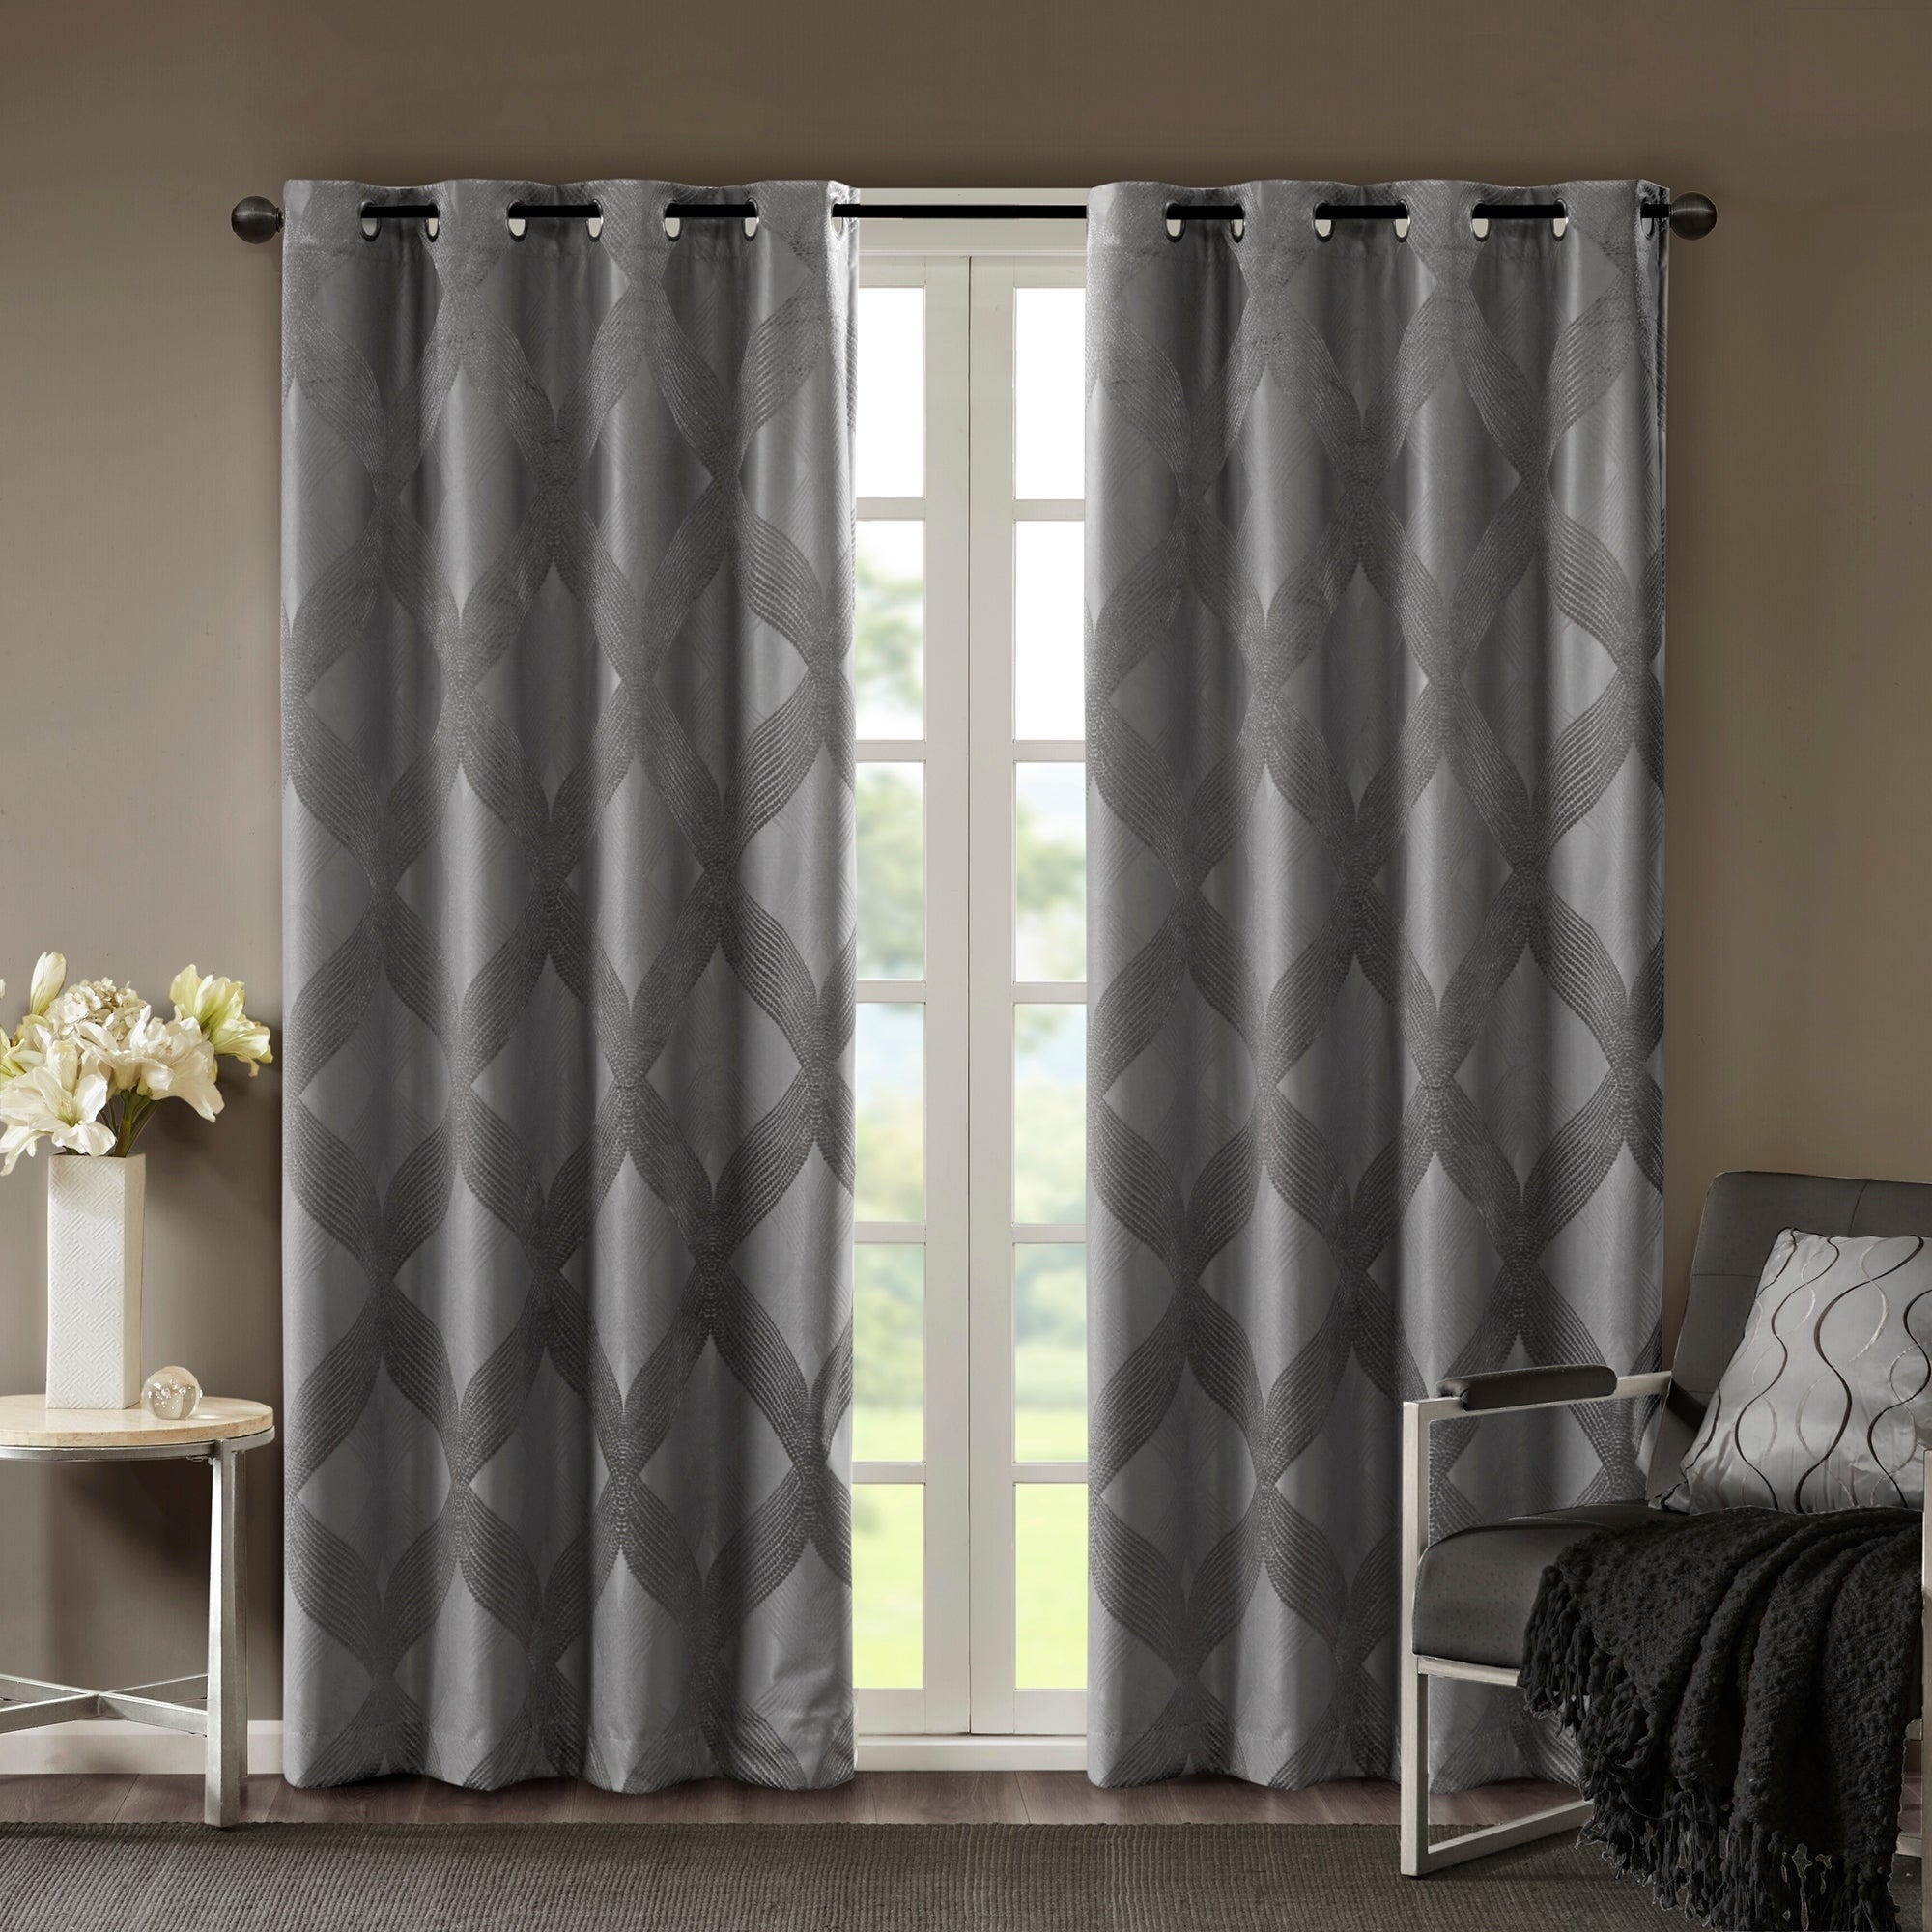 Sunsmart Abel Ogee Knitted Jacquard Total Blackout Curtain Panel For Gracewood Hollow Tucakovic Energy Efficient Fabric Blackout Curtains (View 18 of 20)